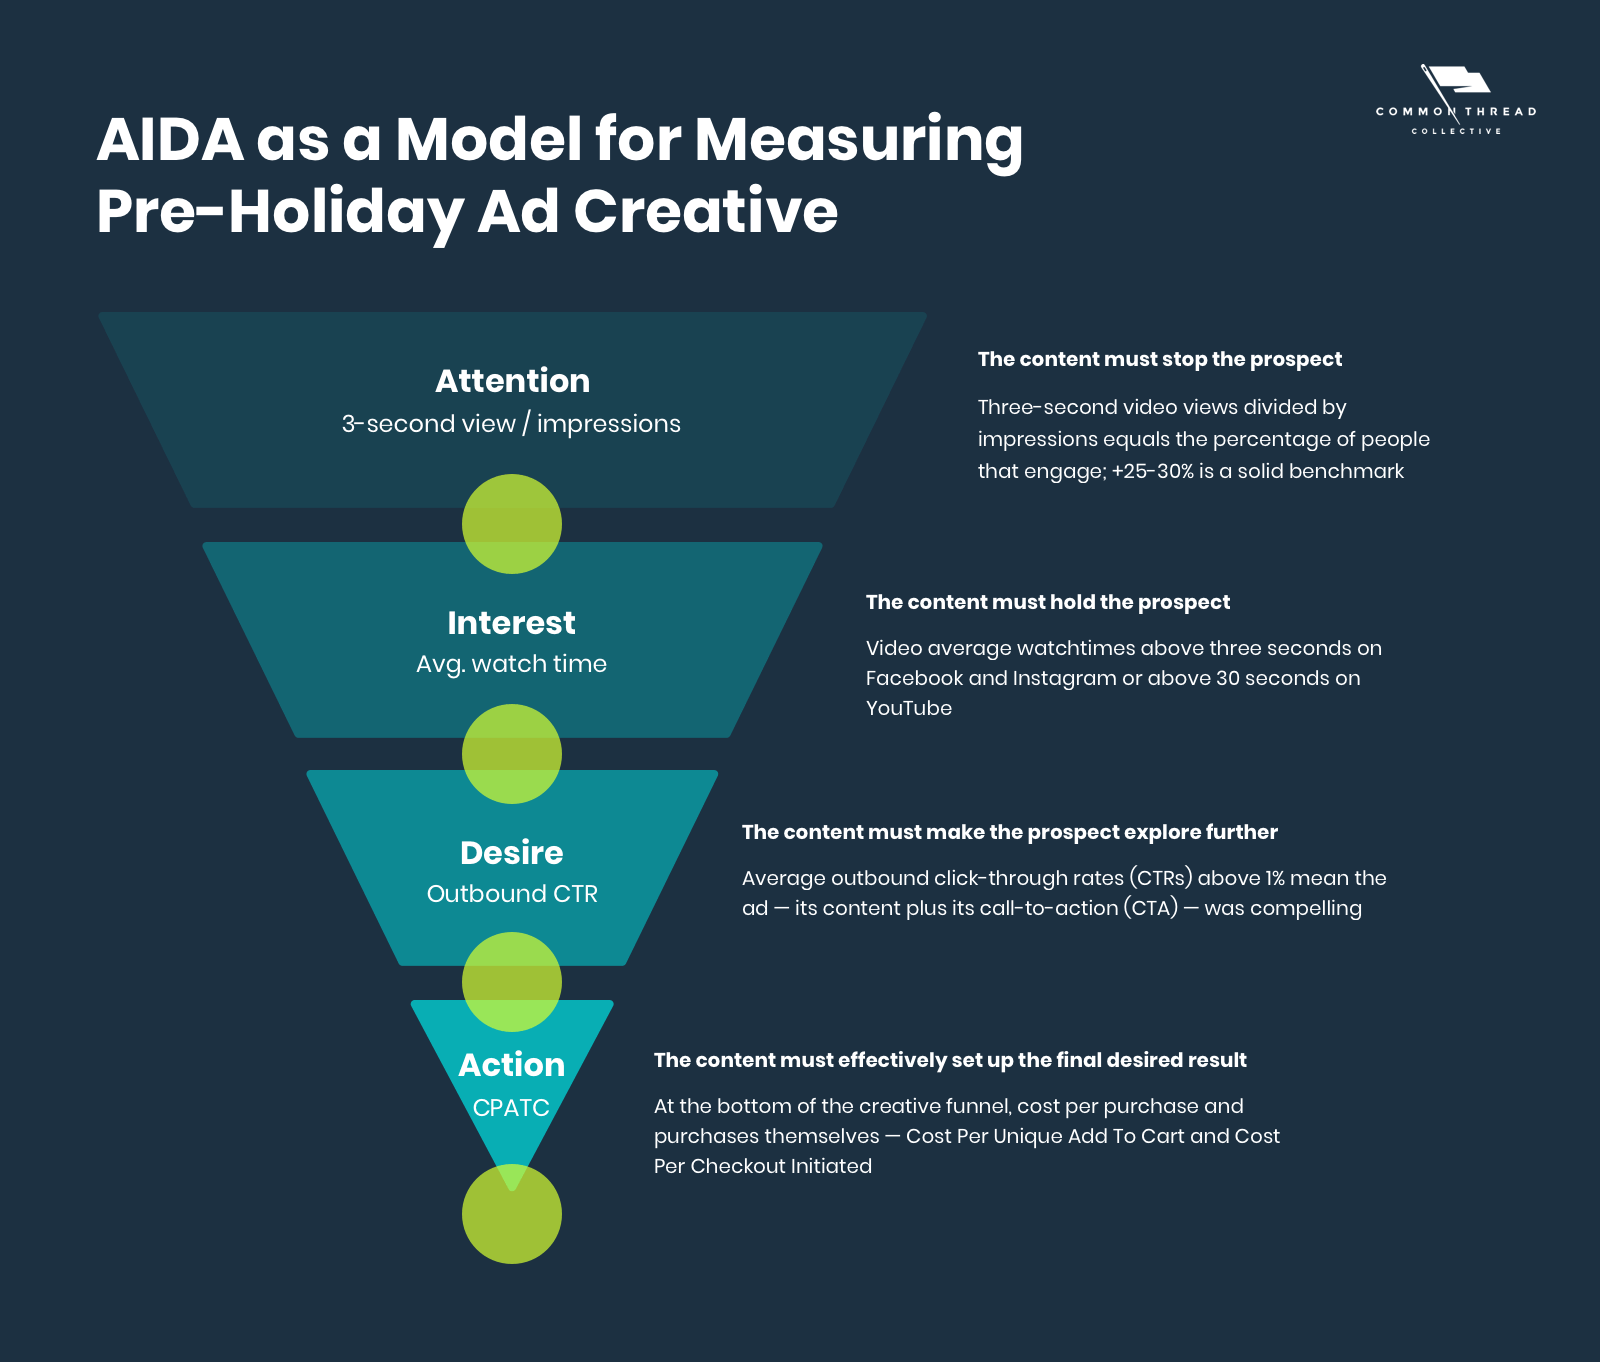 AIDA as a Model for Measuring Pre-Holiday Ad Creative